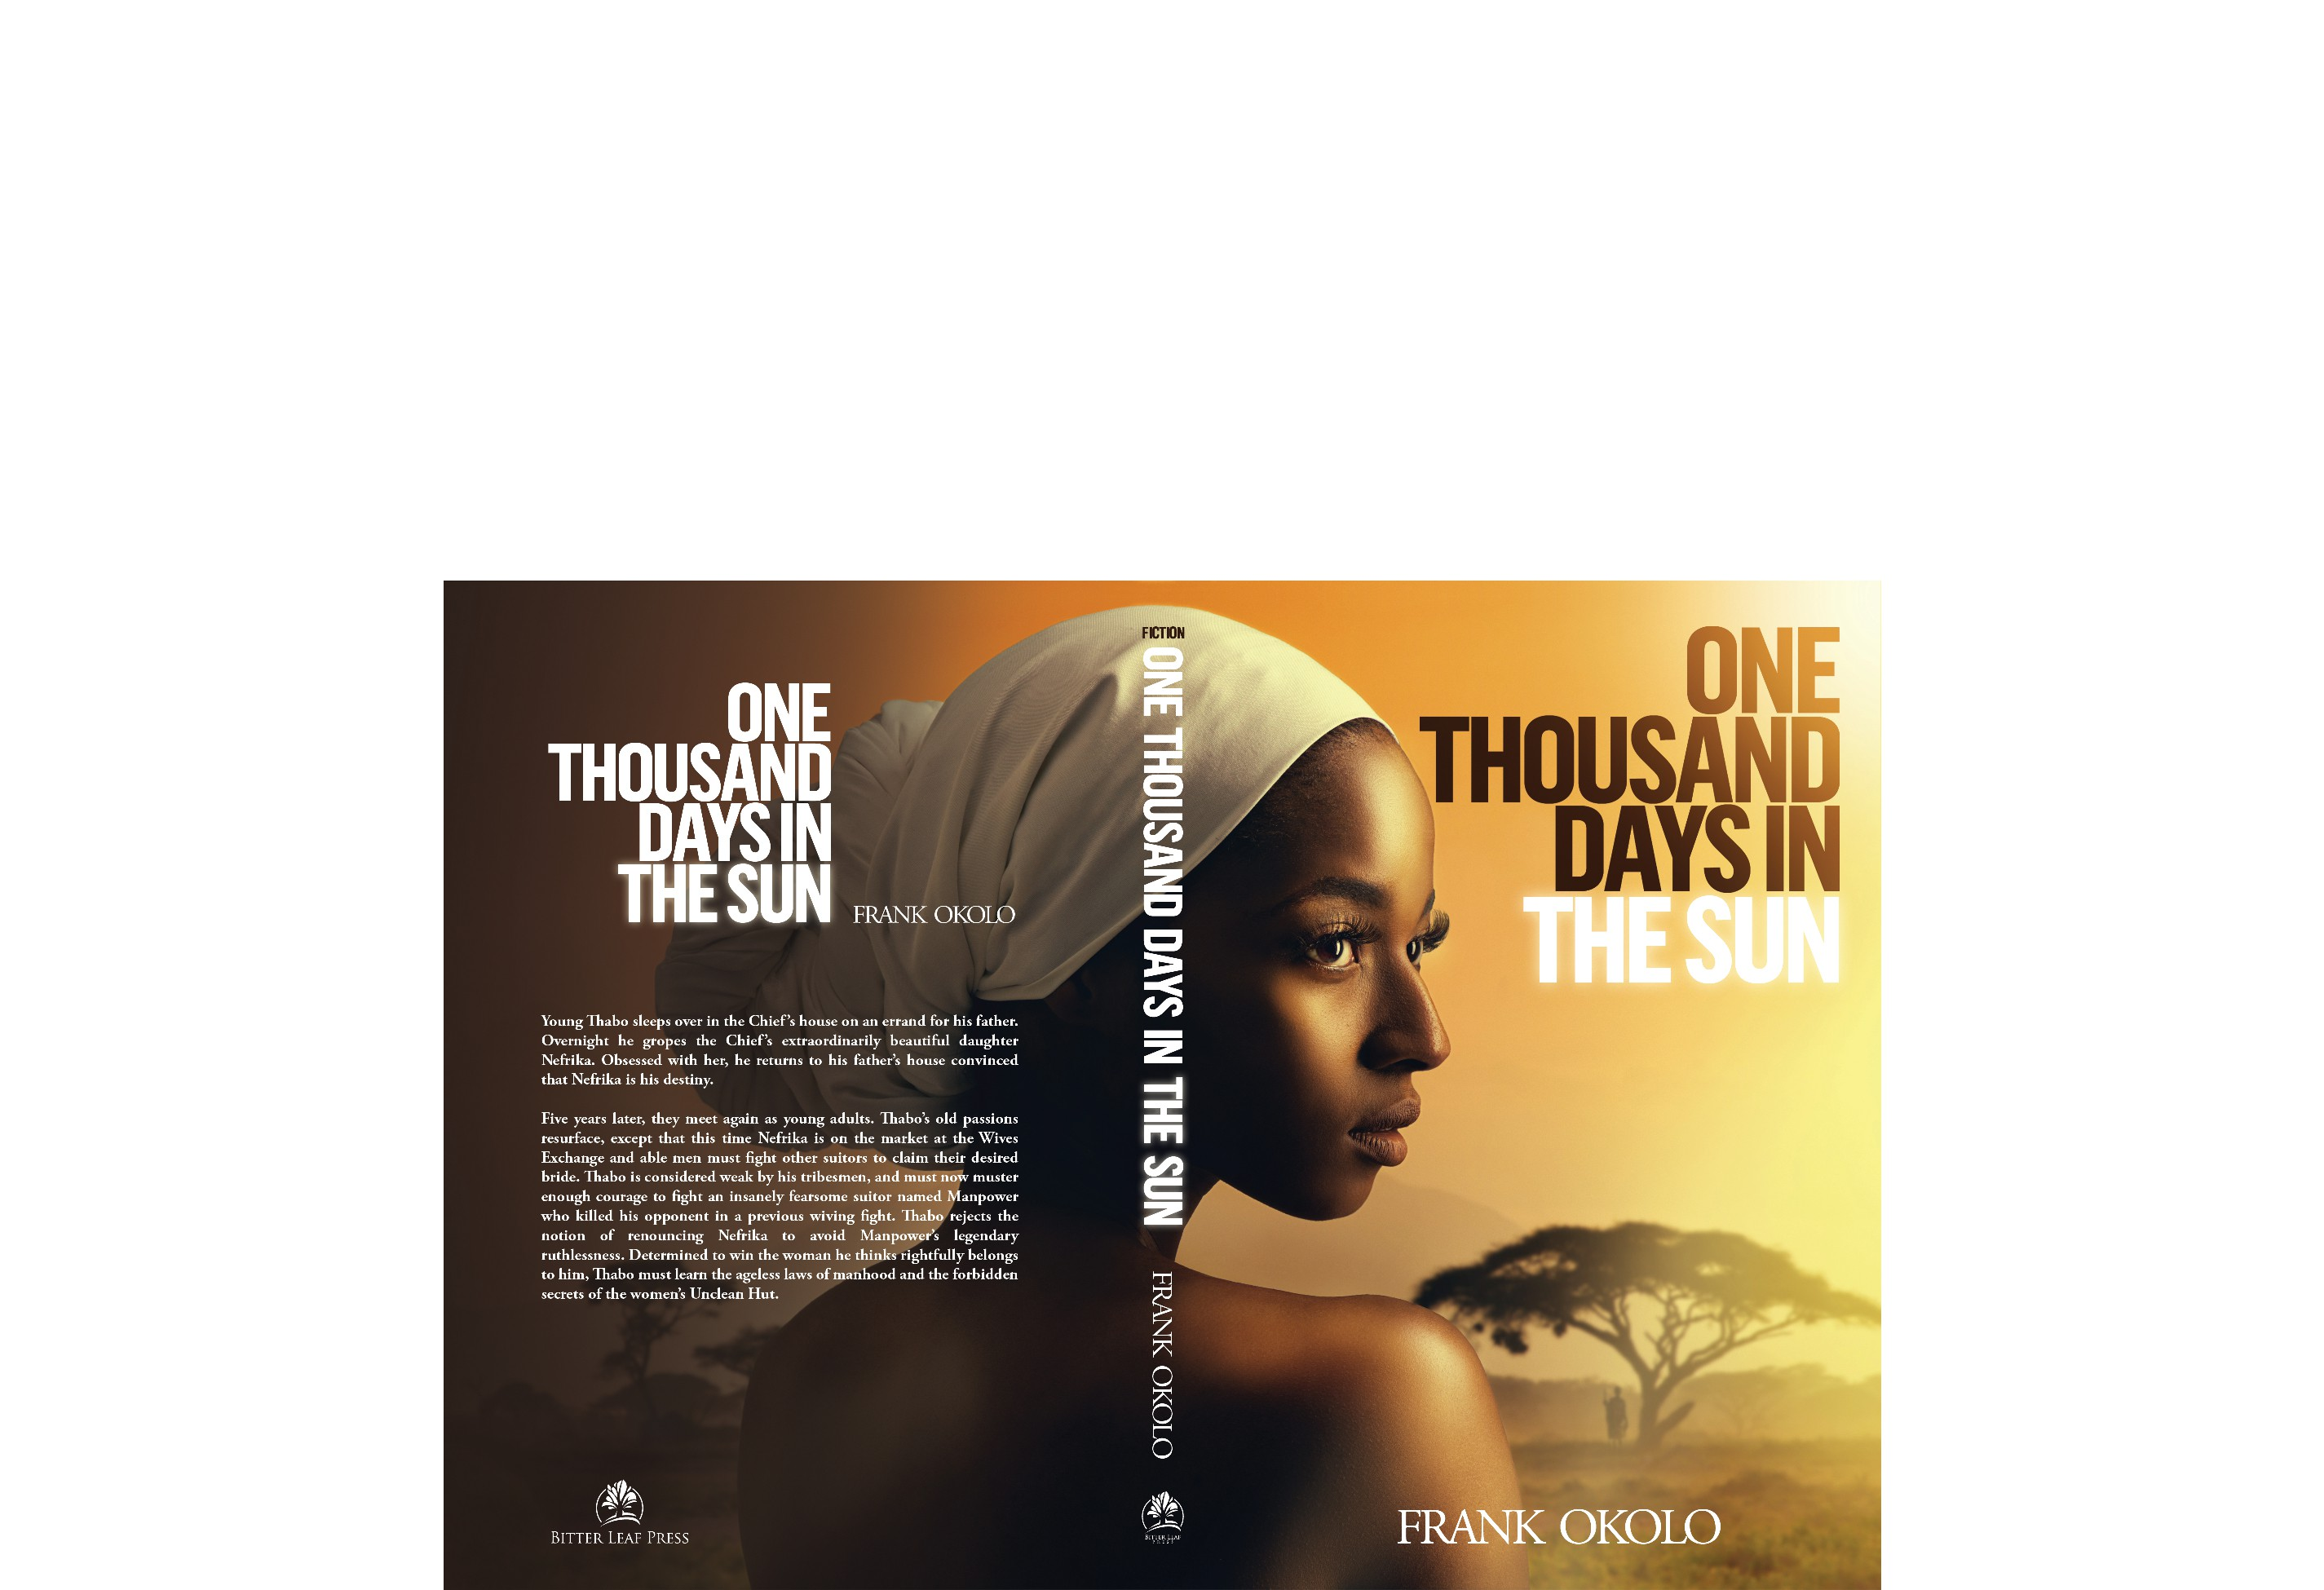 Create an attention-grabbing book cover for my mainstream novel One Thousand Days in The Sun.